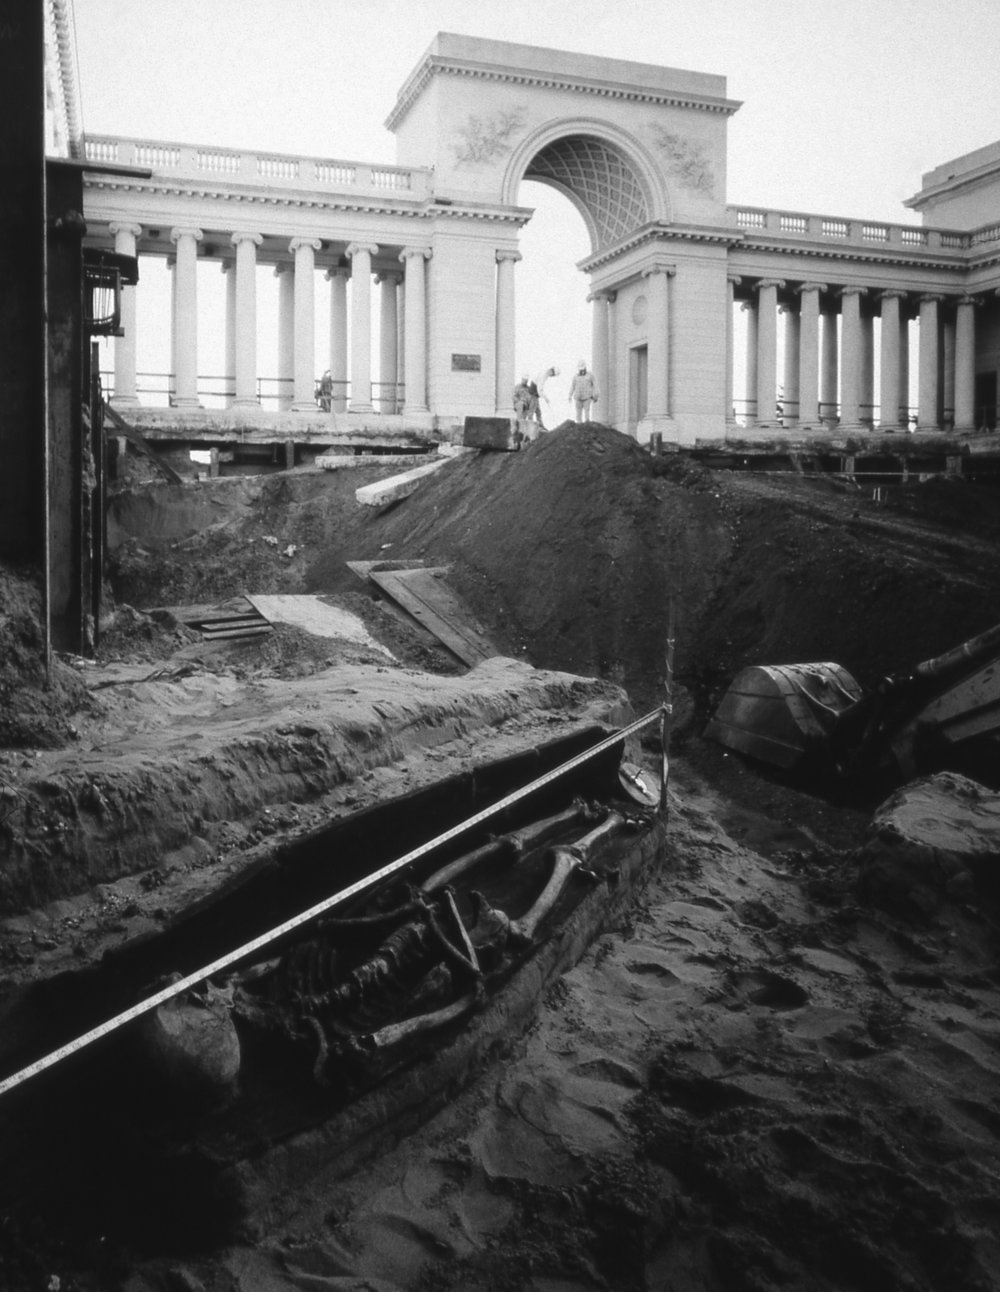 Burial, Angled With Backhoe, 1994